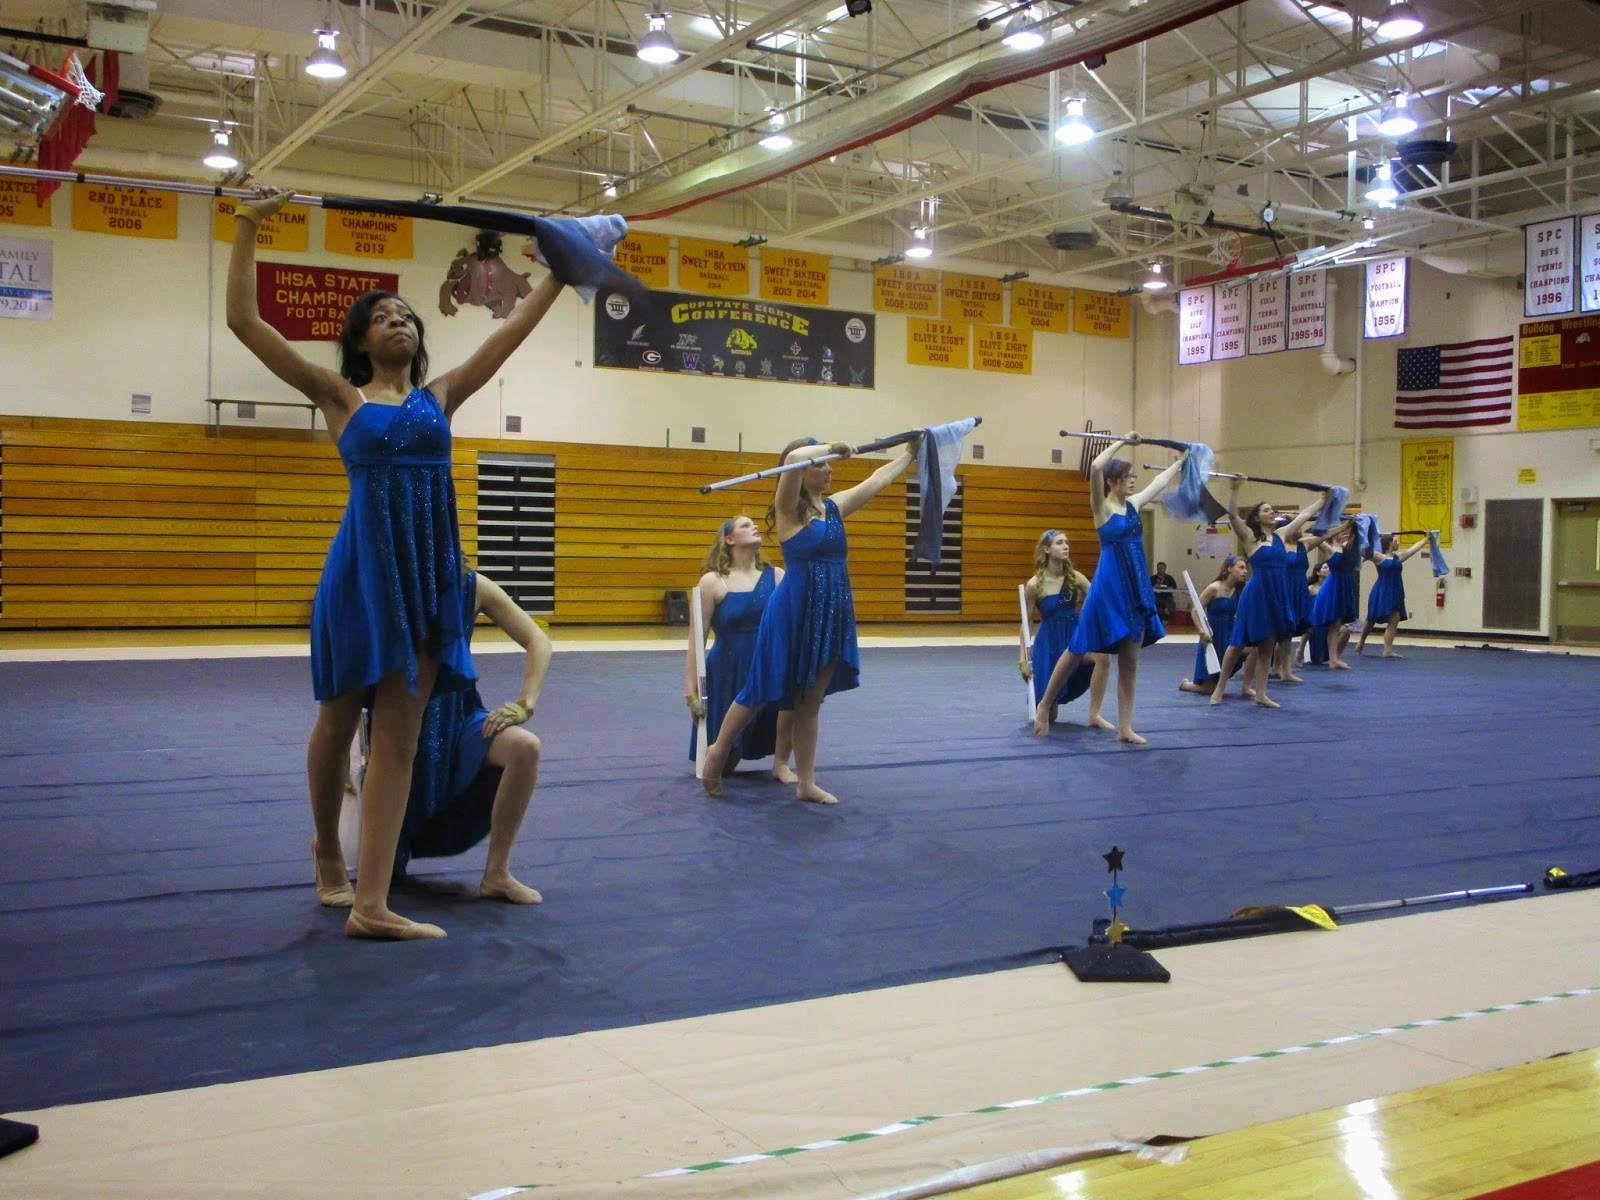 downers grove north high school bands winter guard takes. Black Bedroom Furniture Sets. Home Design Ideas